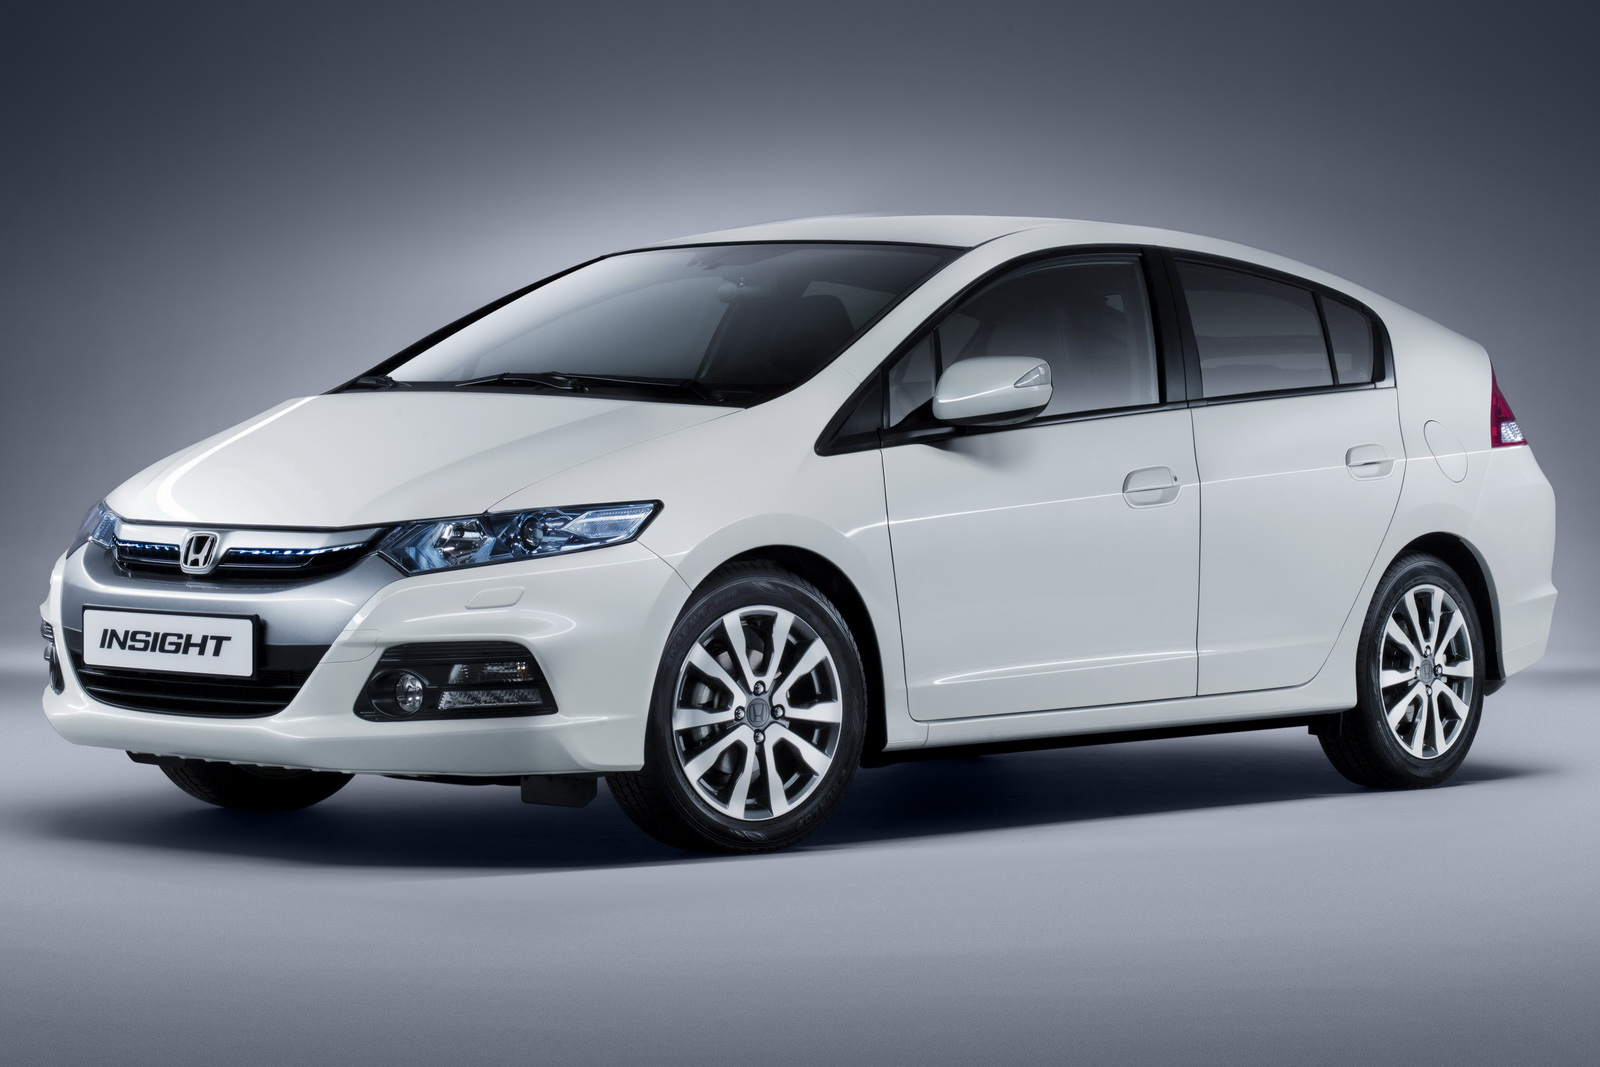 Rent A Honda Insight Europcar Belgium